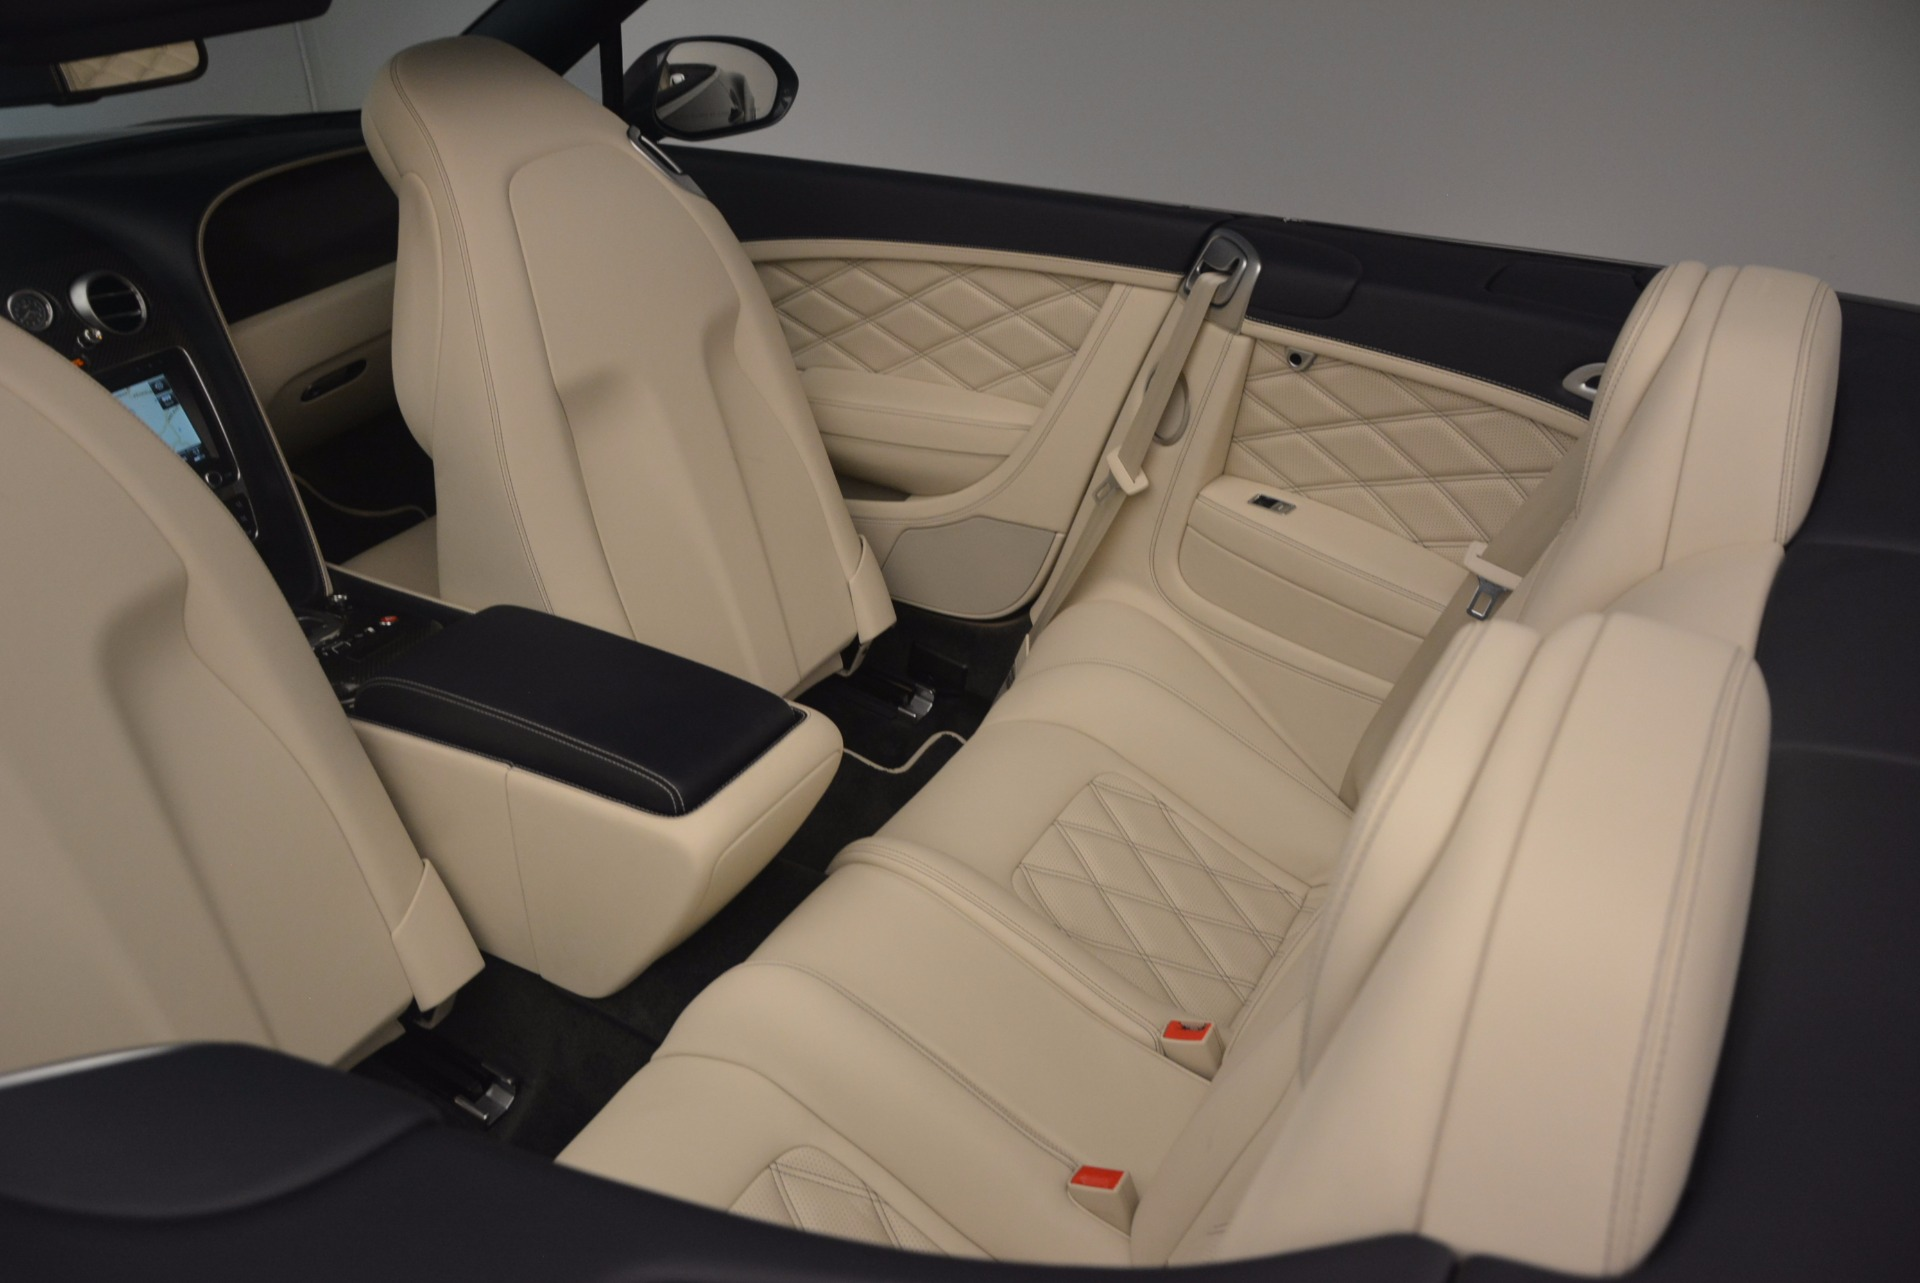 Used 2013 Bentley Continental GT V8 Le Mans Edition, 1 of 48 For Sale In Greenwich, CT 1288_p47